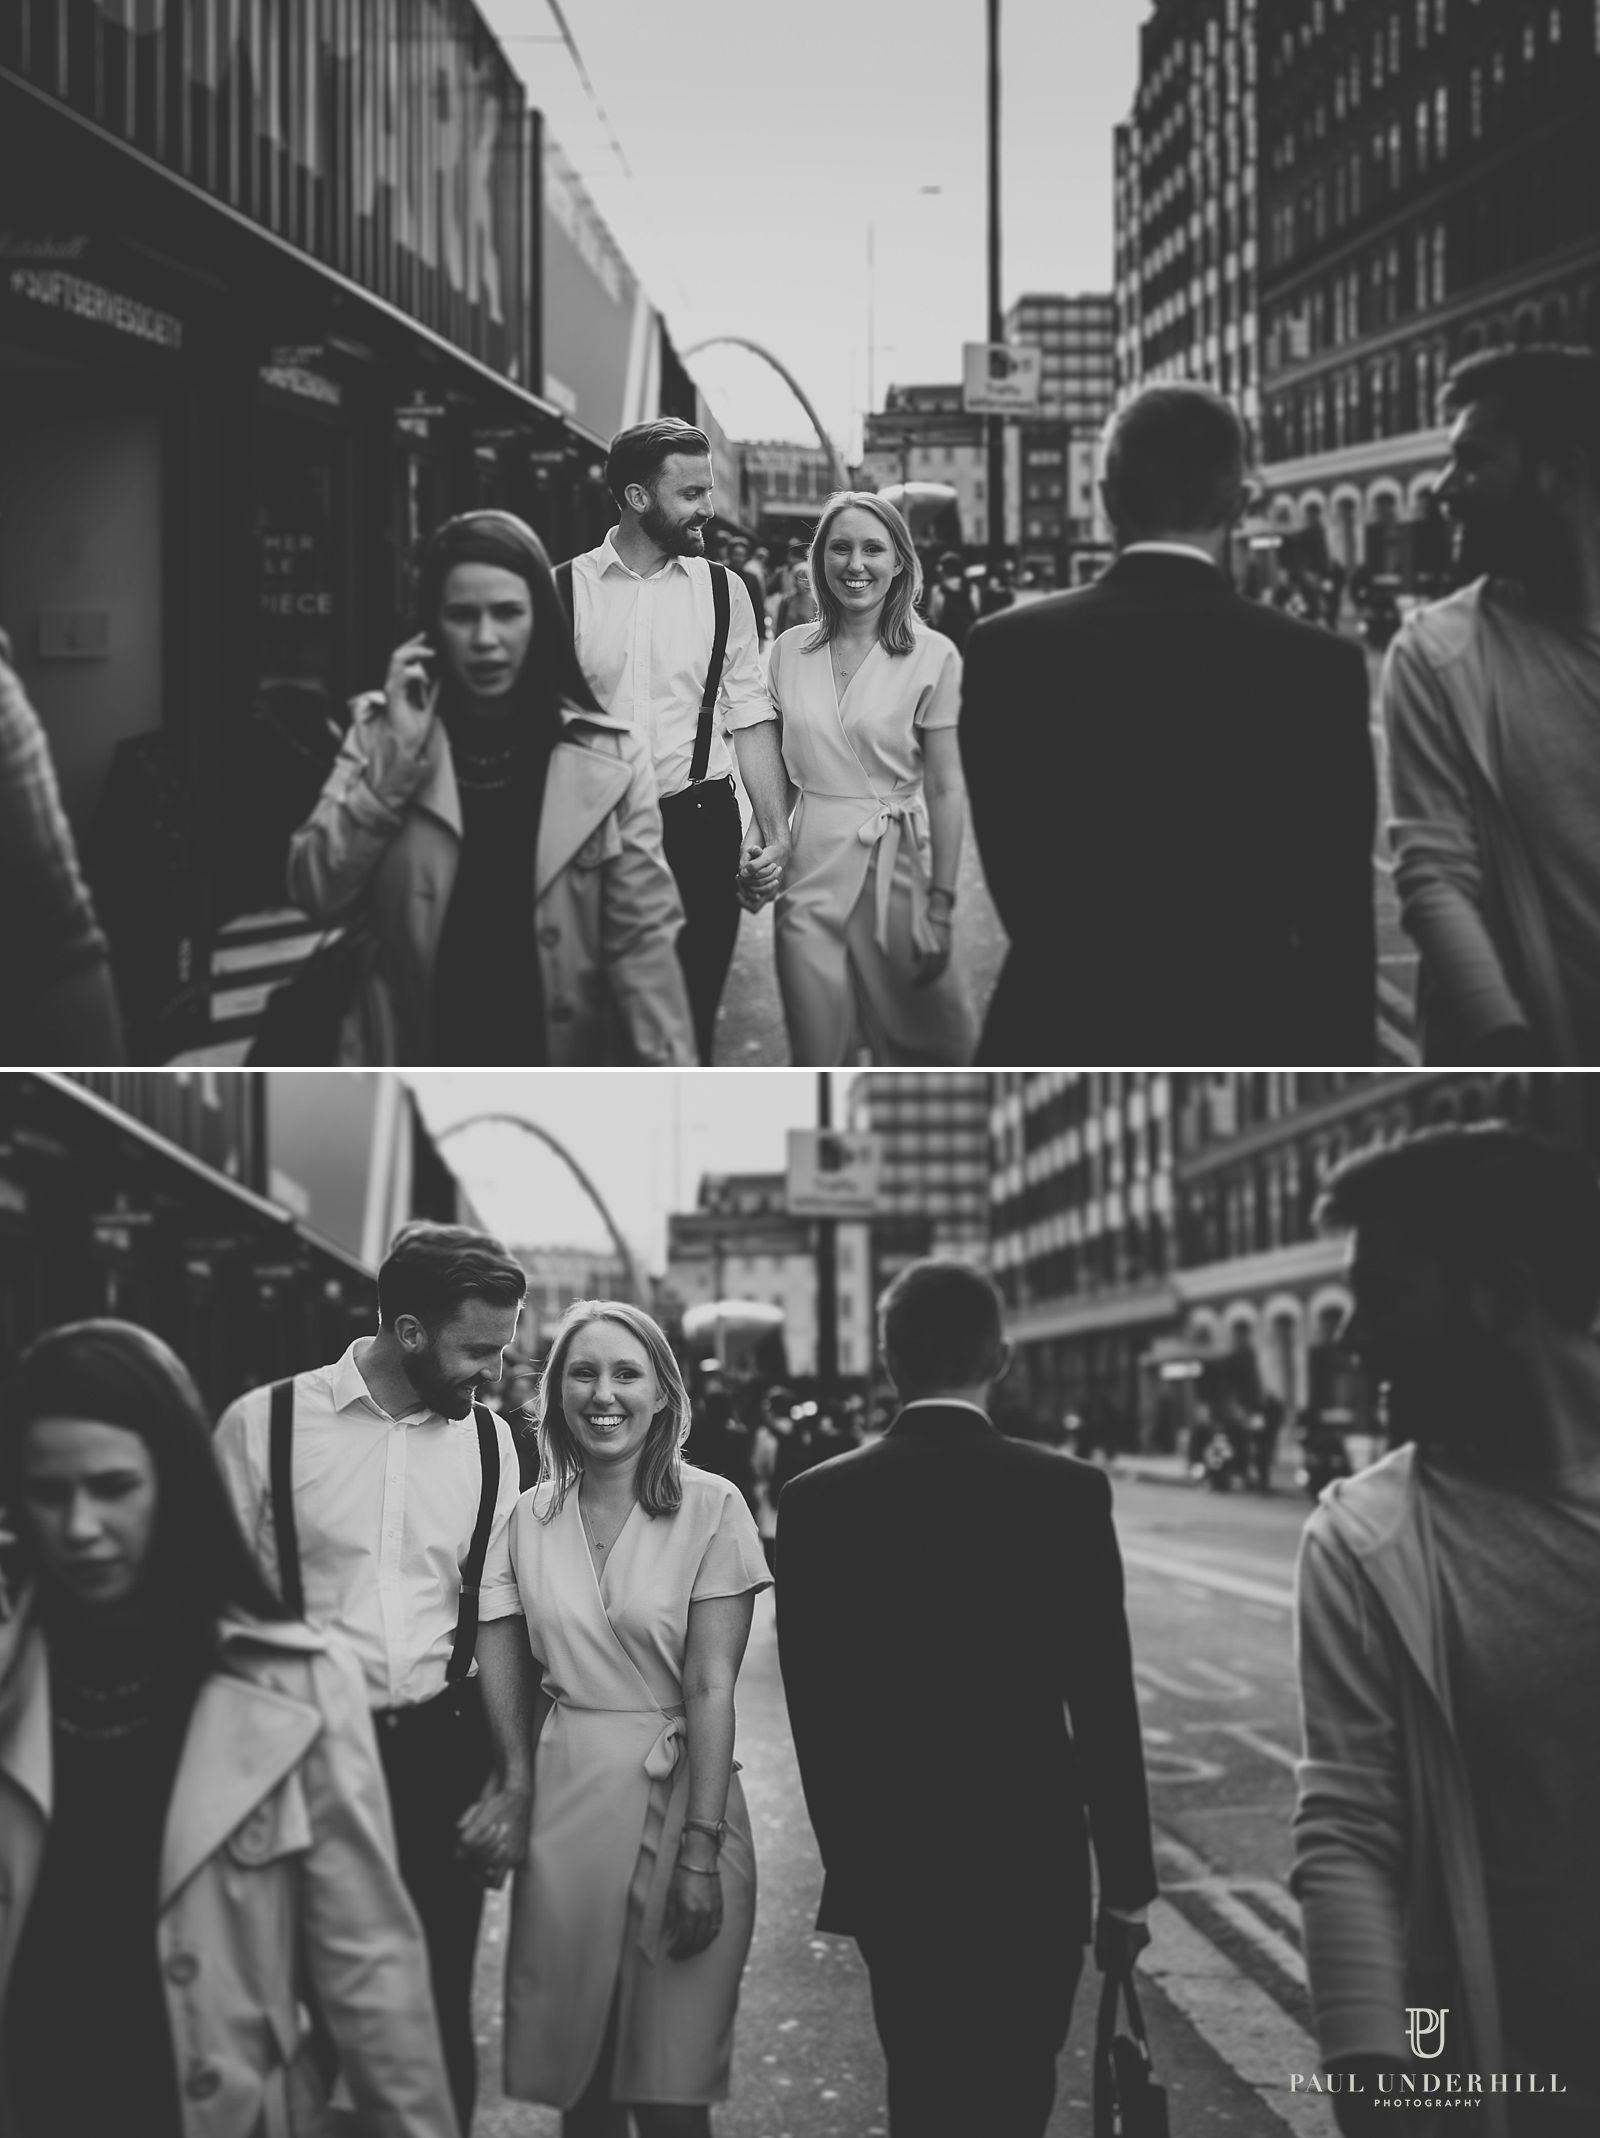 Candid portraits on streets of London